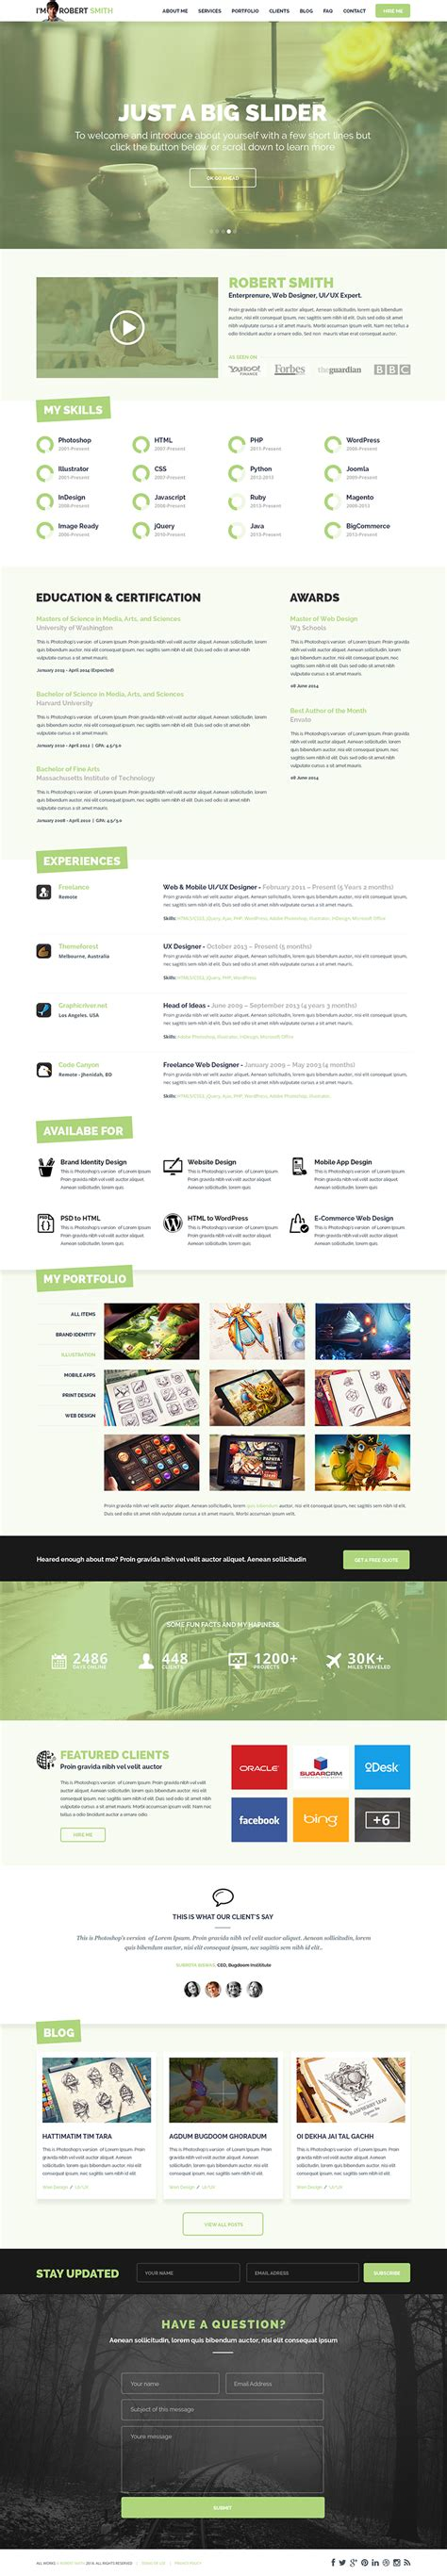 5 Free Extremely Professional Resume Templates Collection 2014 A Graphic World Resume Website Template